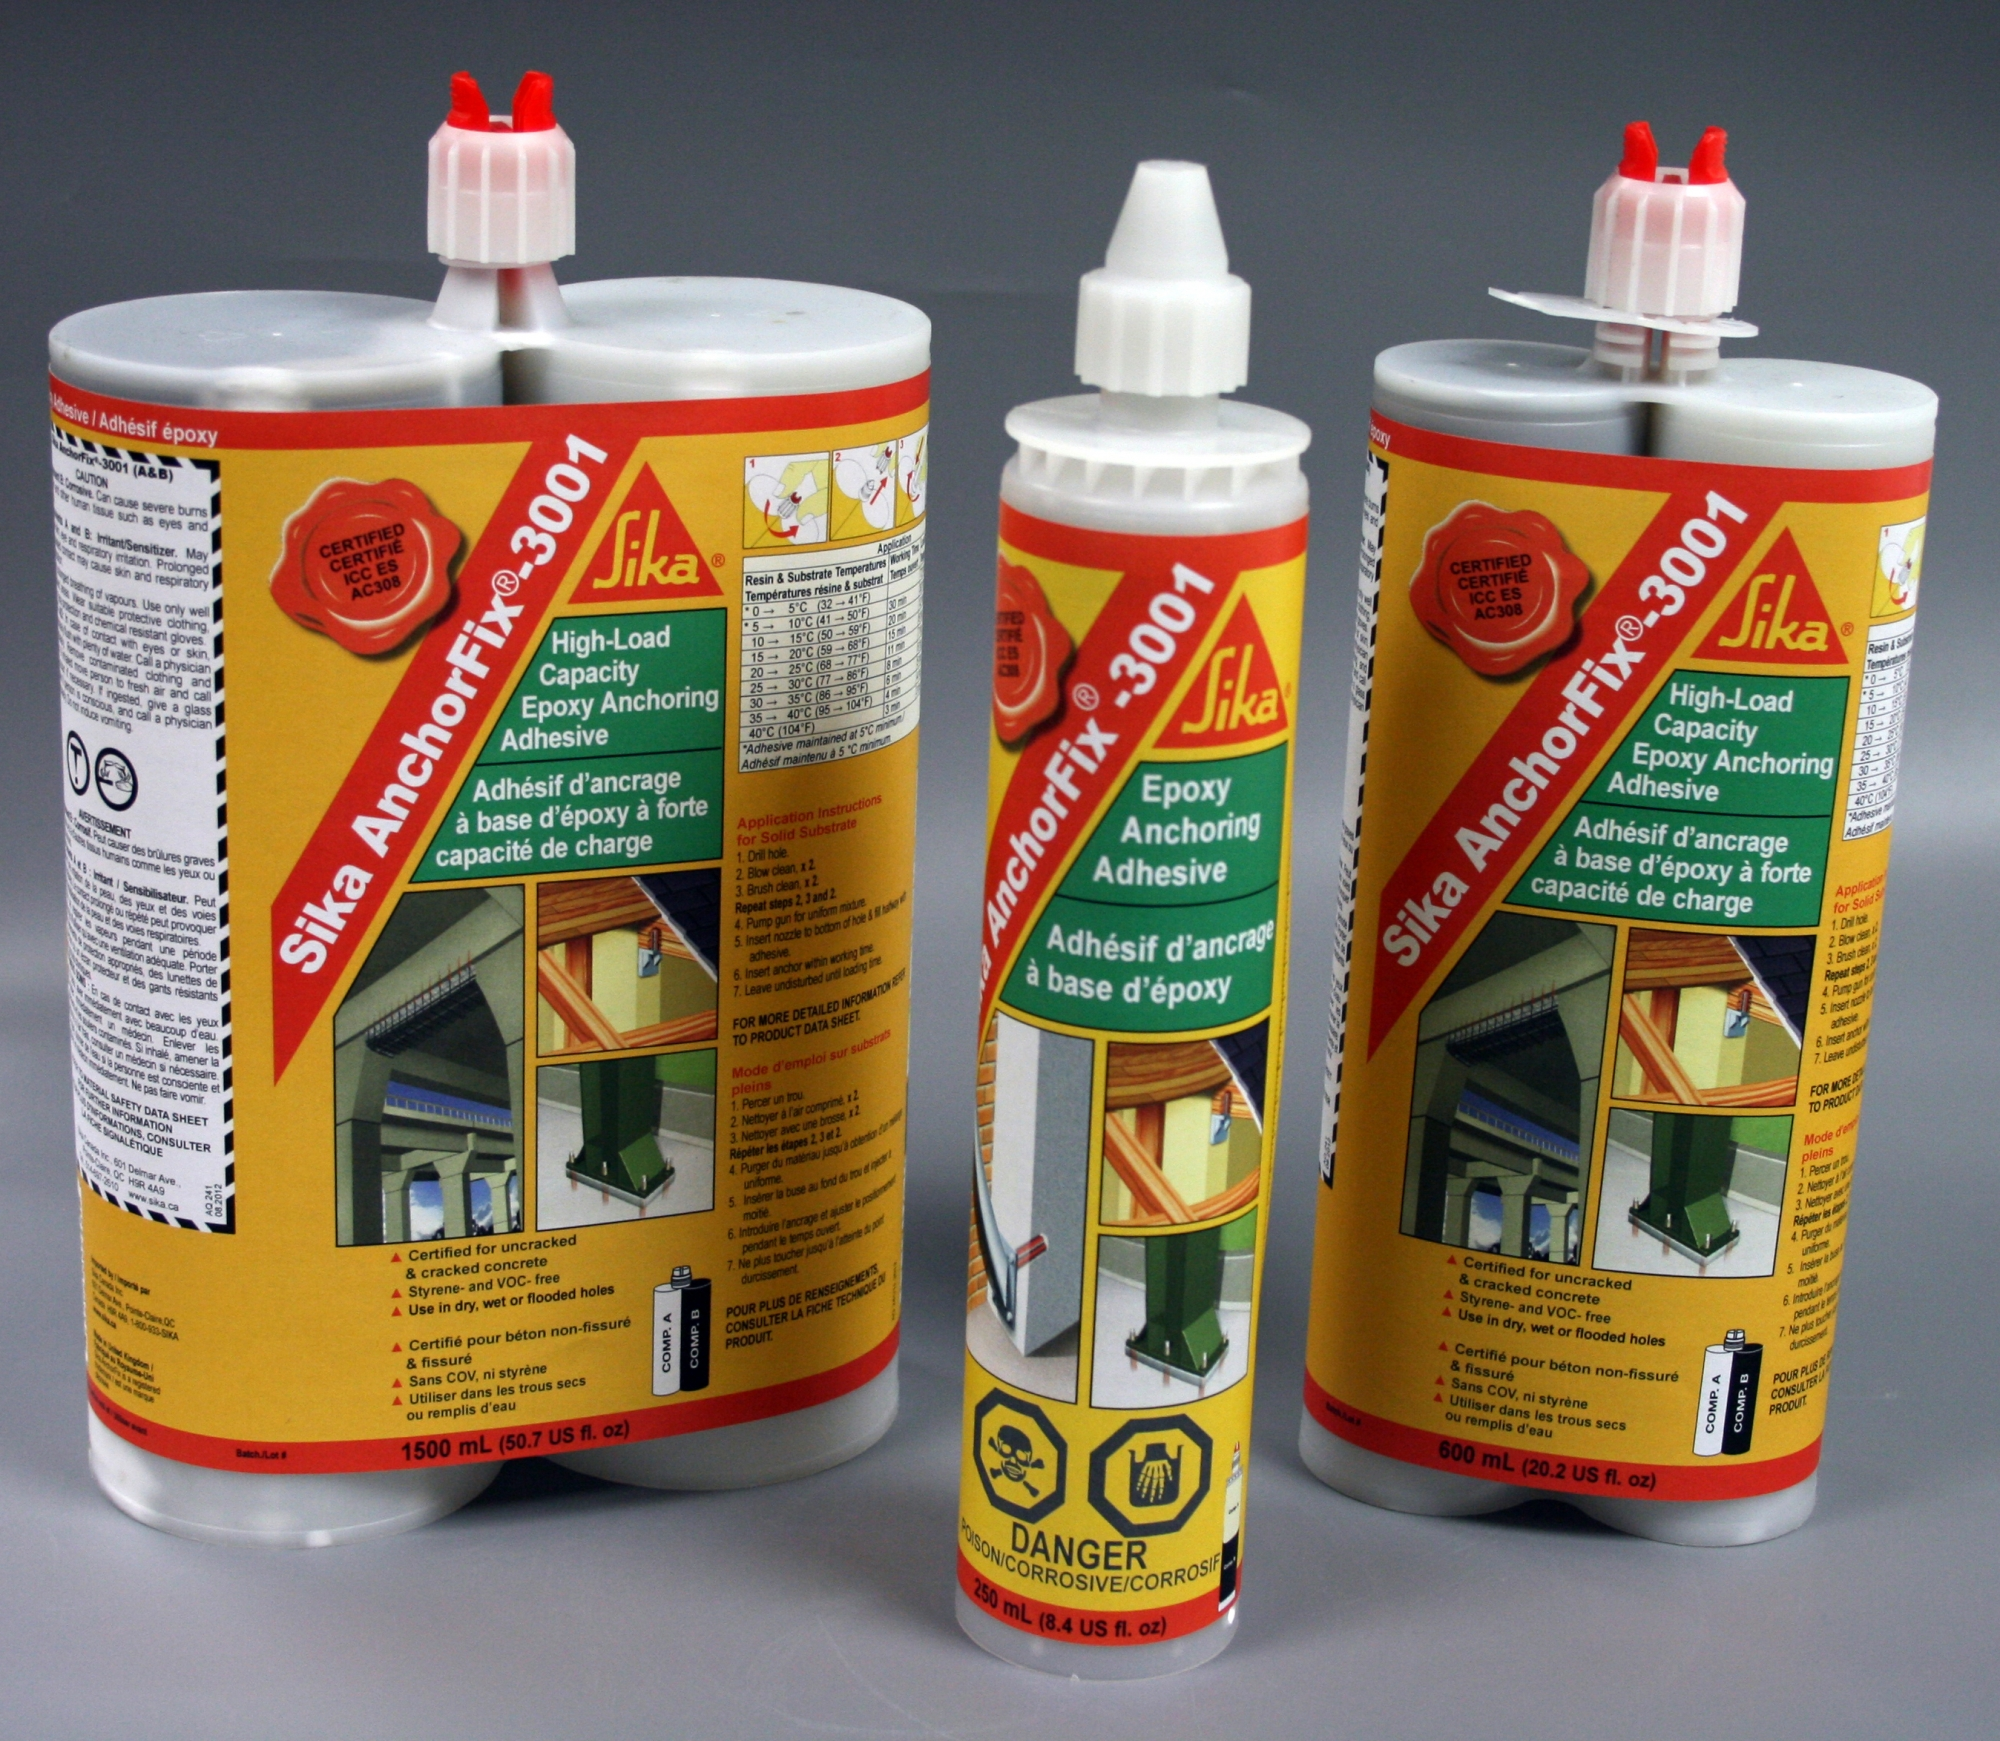 Sika anchorfix 3001 250ml 10 oz cart nca 7686 - Sika anchorfix 3 ...